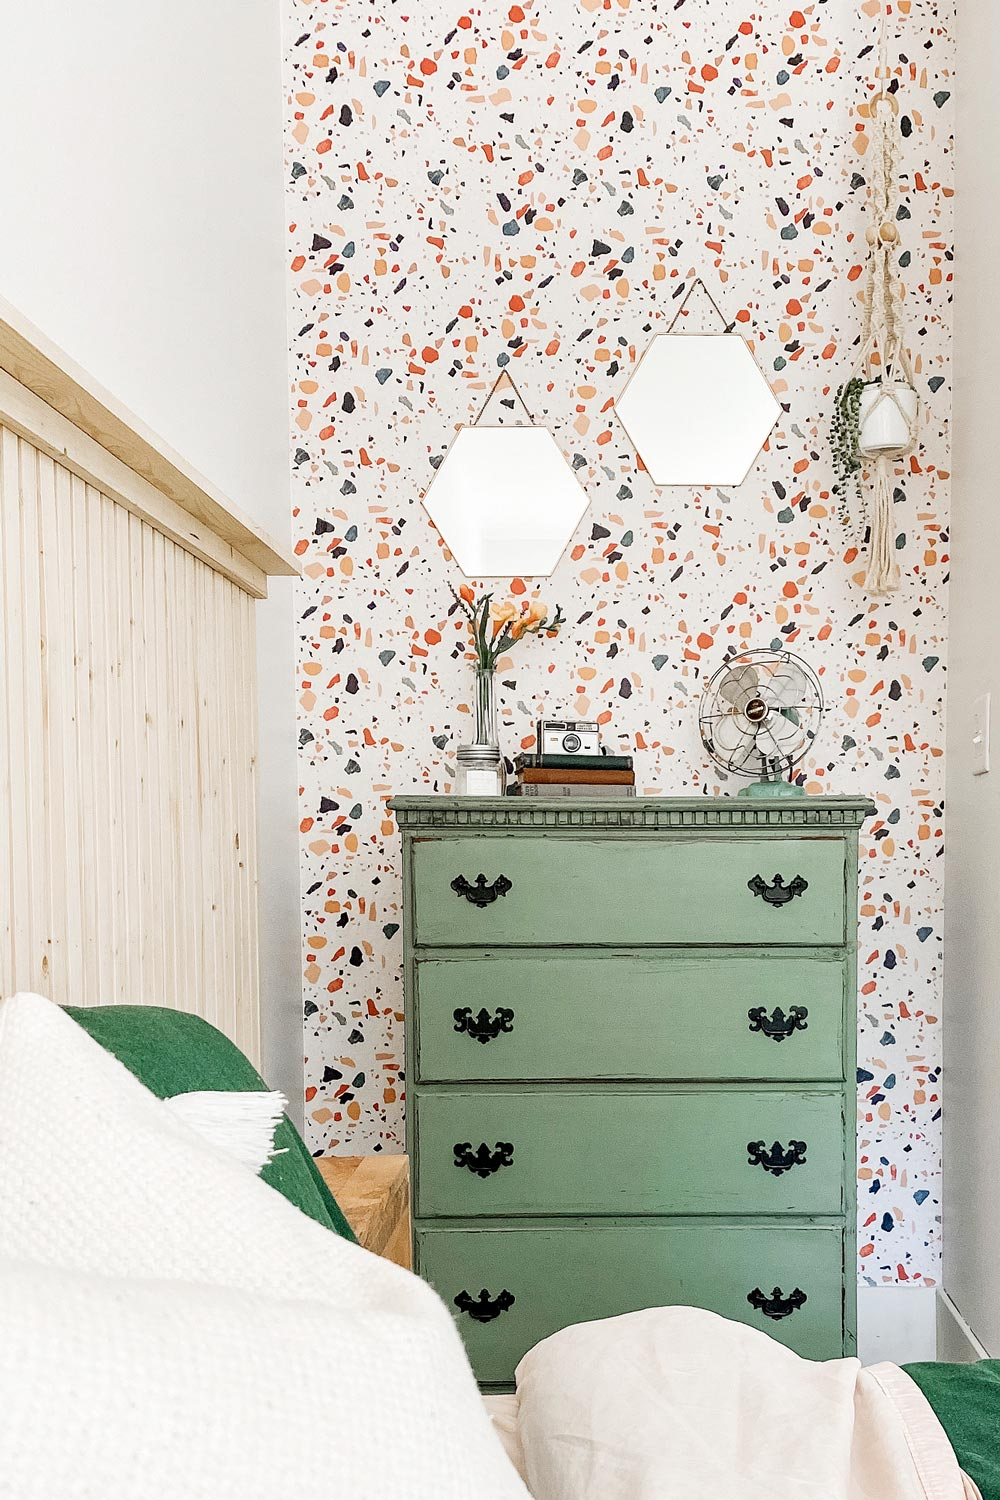 Colorful Terrazzo removable wallpaper styled in rustic bedroom interior